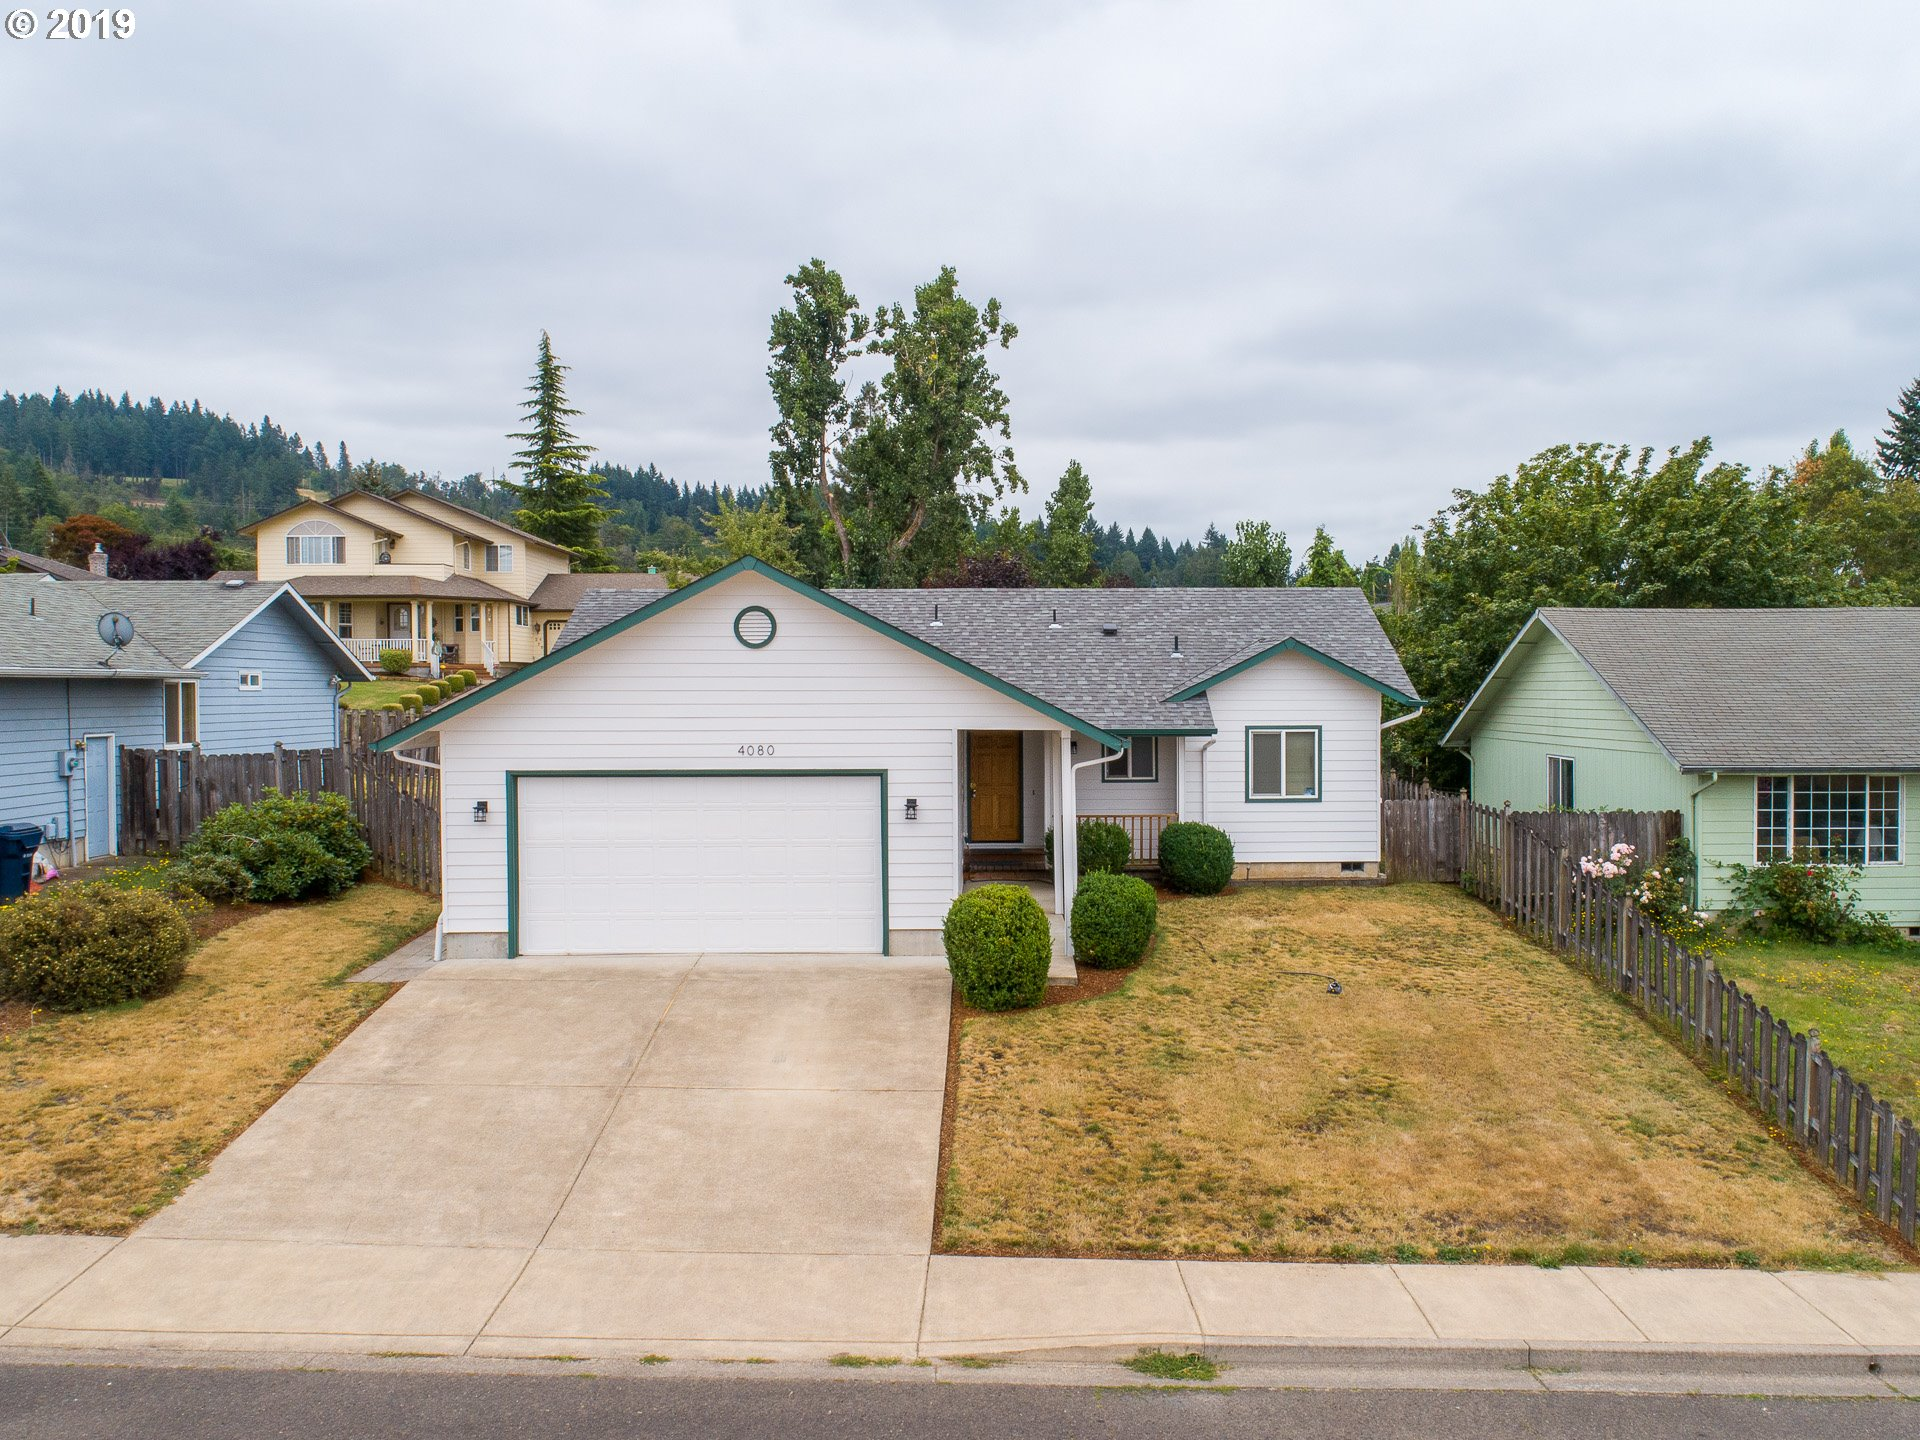 Like new home with New Paint,SS Appliances, Roof, Laminate Flooring, Carpet & toilets. Vaulted ceilings and Oak cabinets.Great cul-de-sac location with the Nature Conservancy just across Bertelsen. Close to hiking trails, bike paths,schools, and  shopping. Excellent Sunset views!